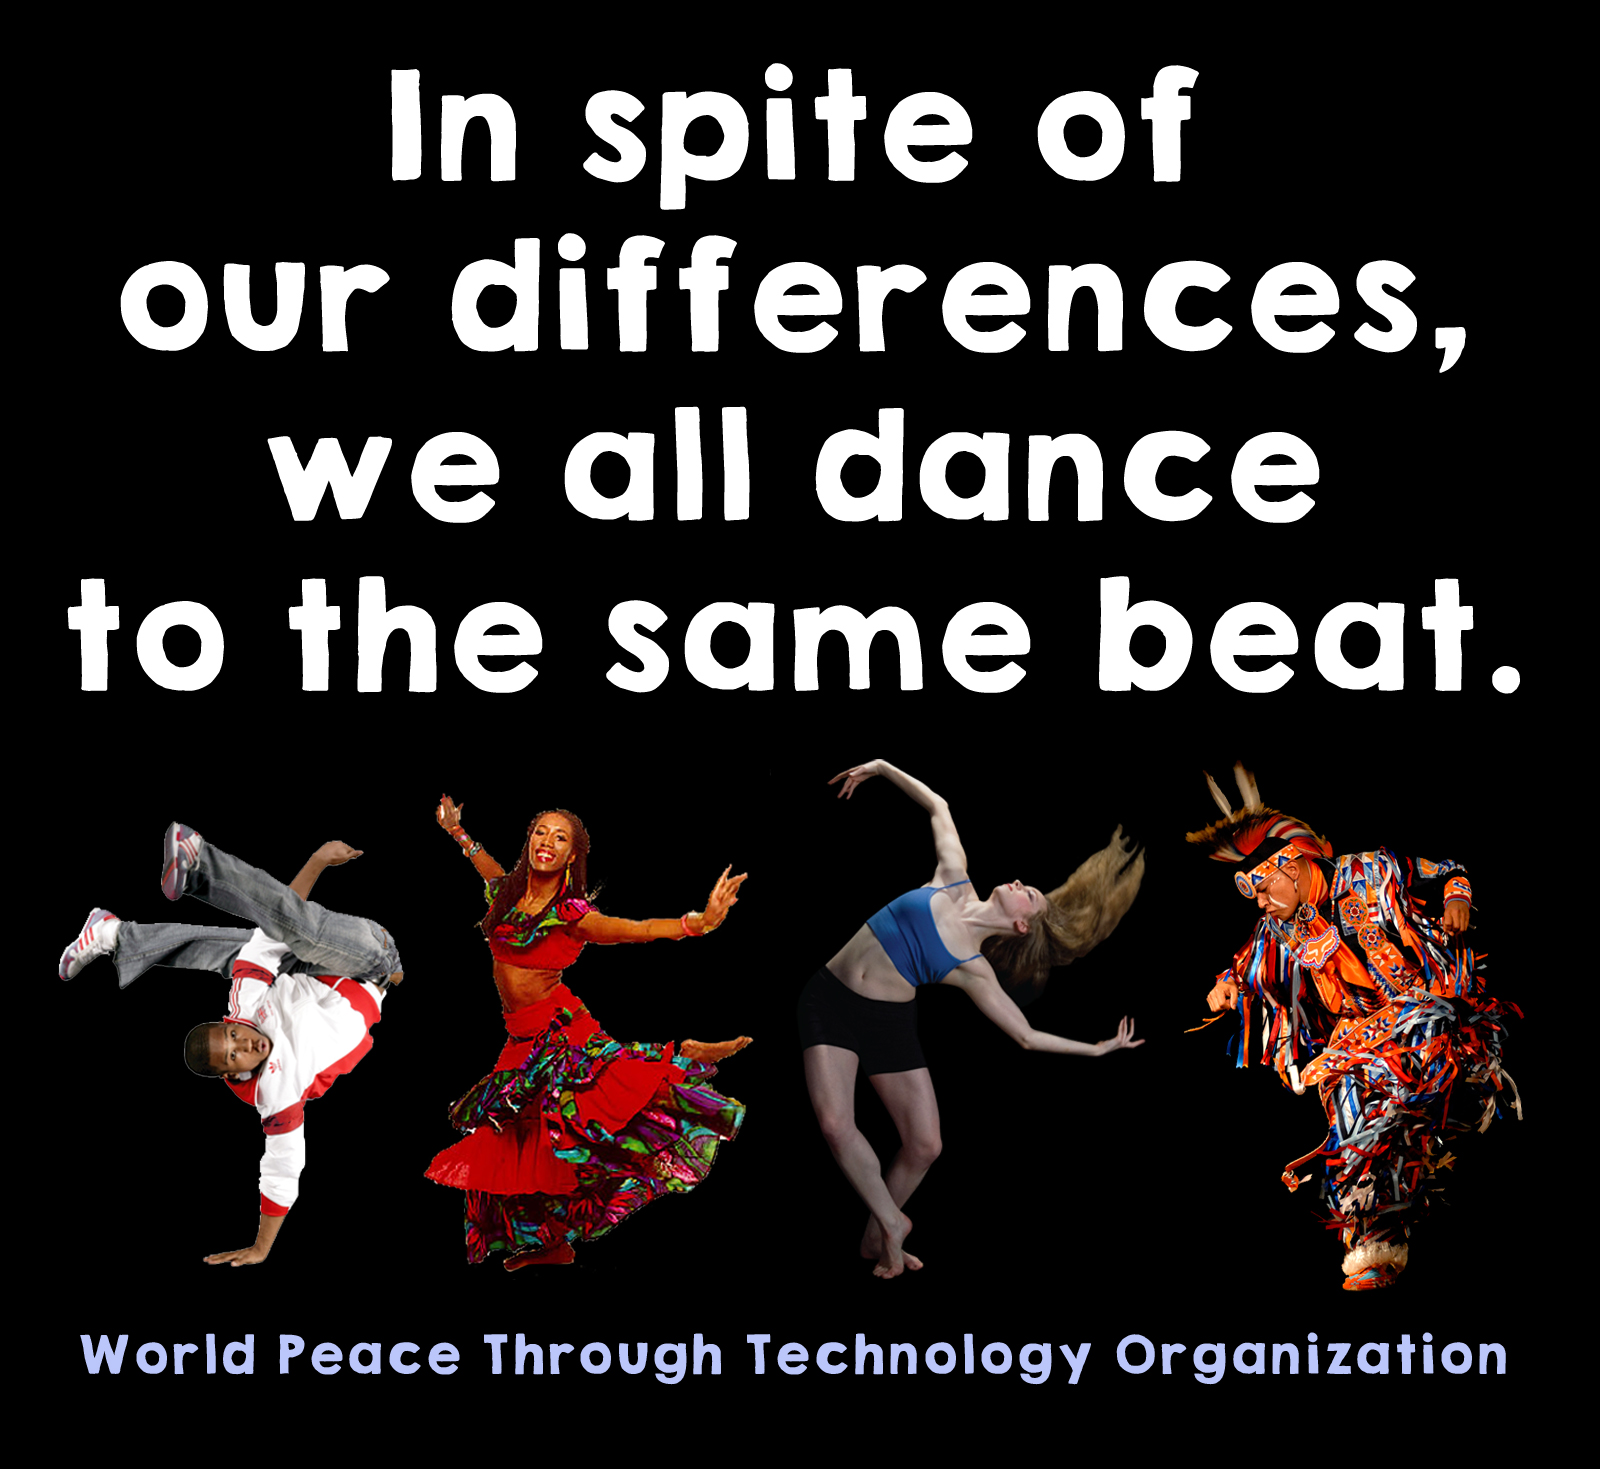 In spite of our differences, we all dance to the same beat.